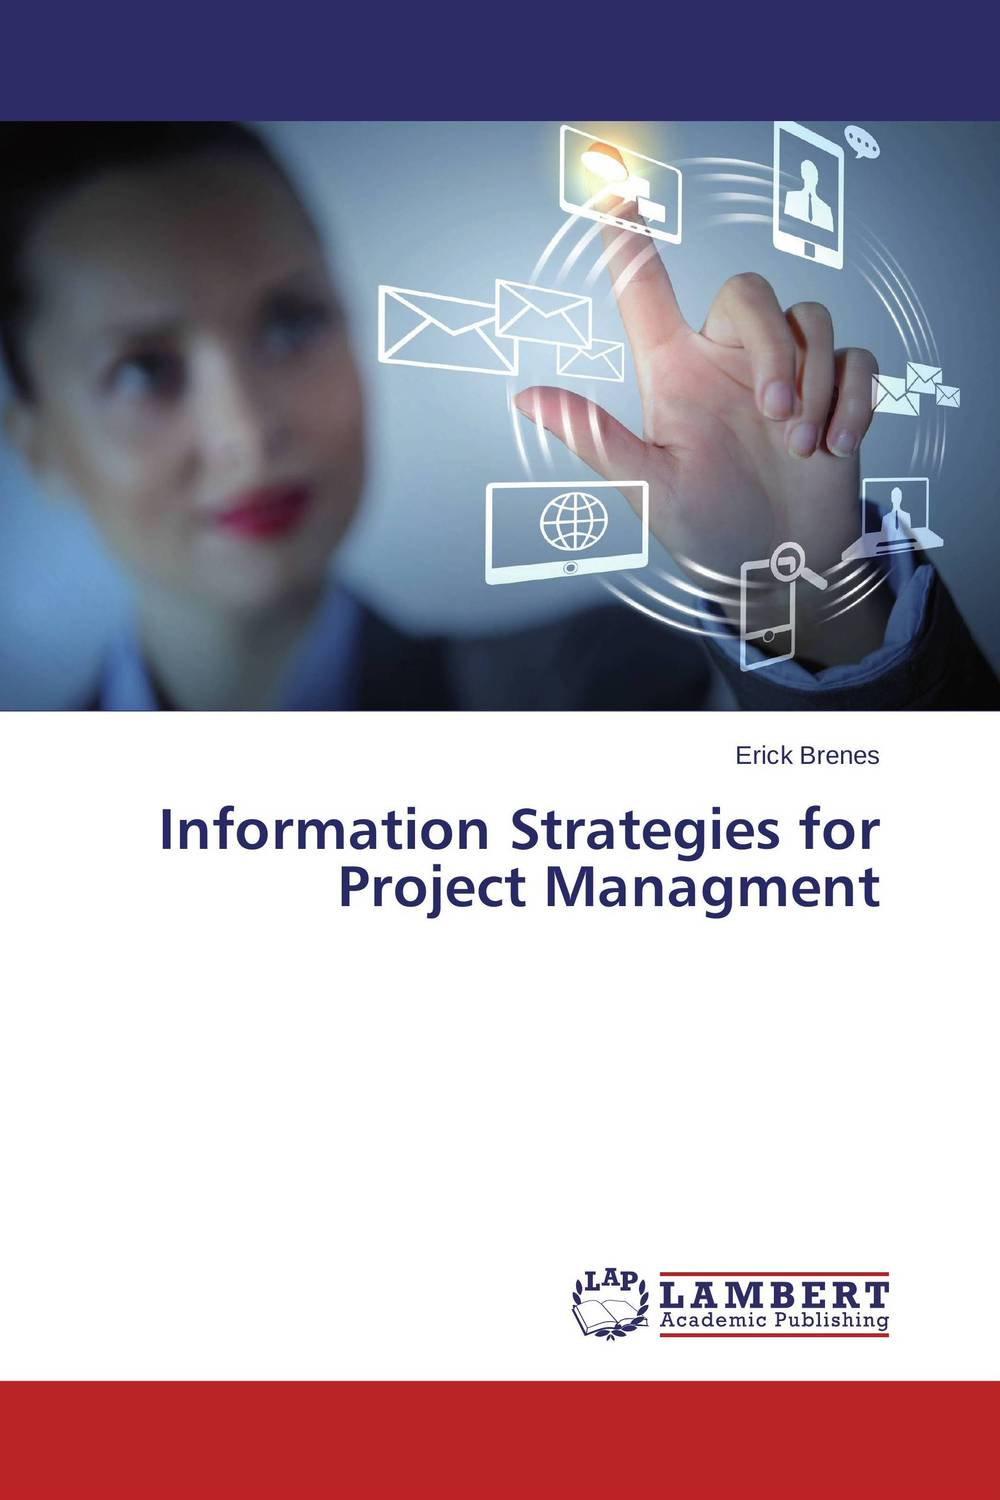 Information Strategies for Project Managment robert hillard information driven business how to manage data and information for maximum advantage